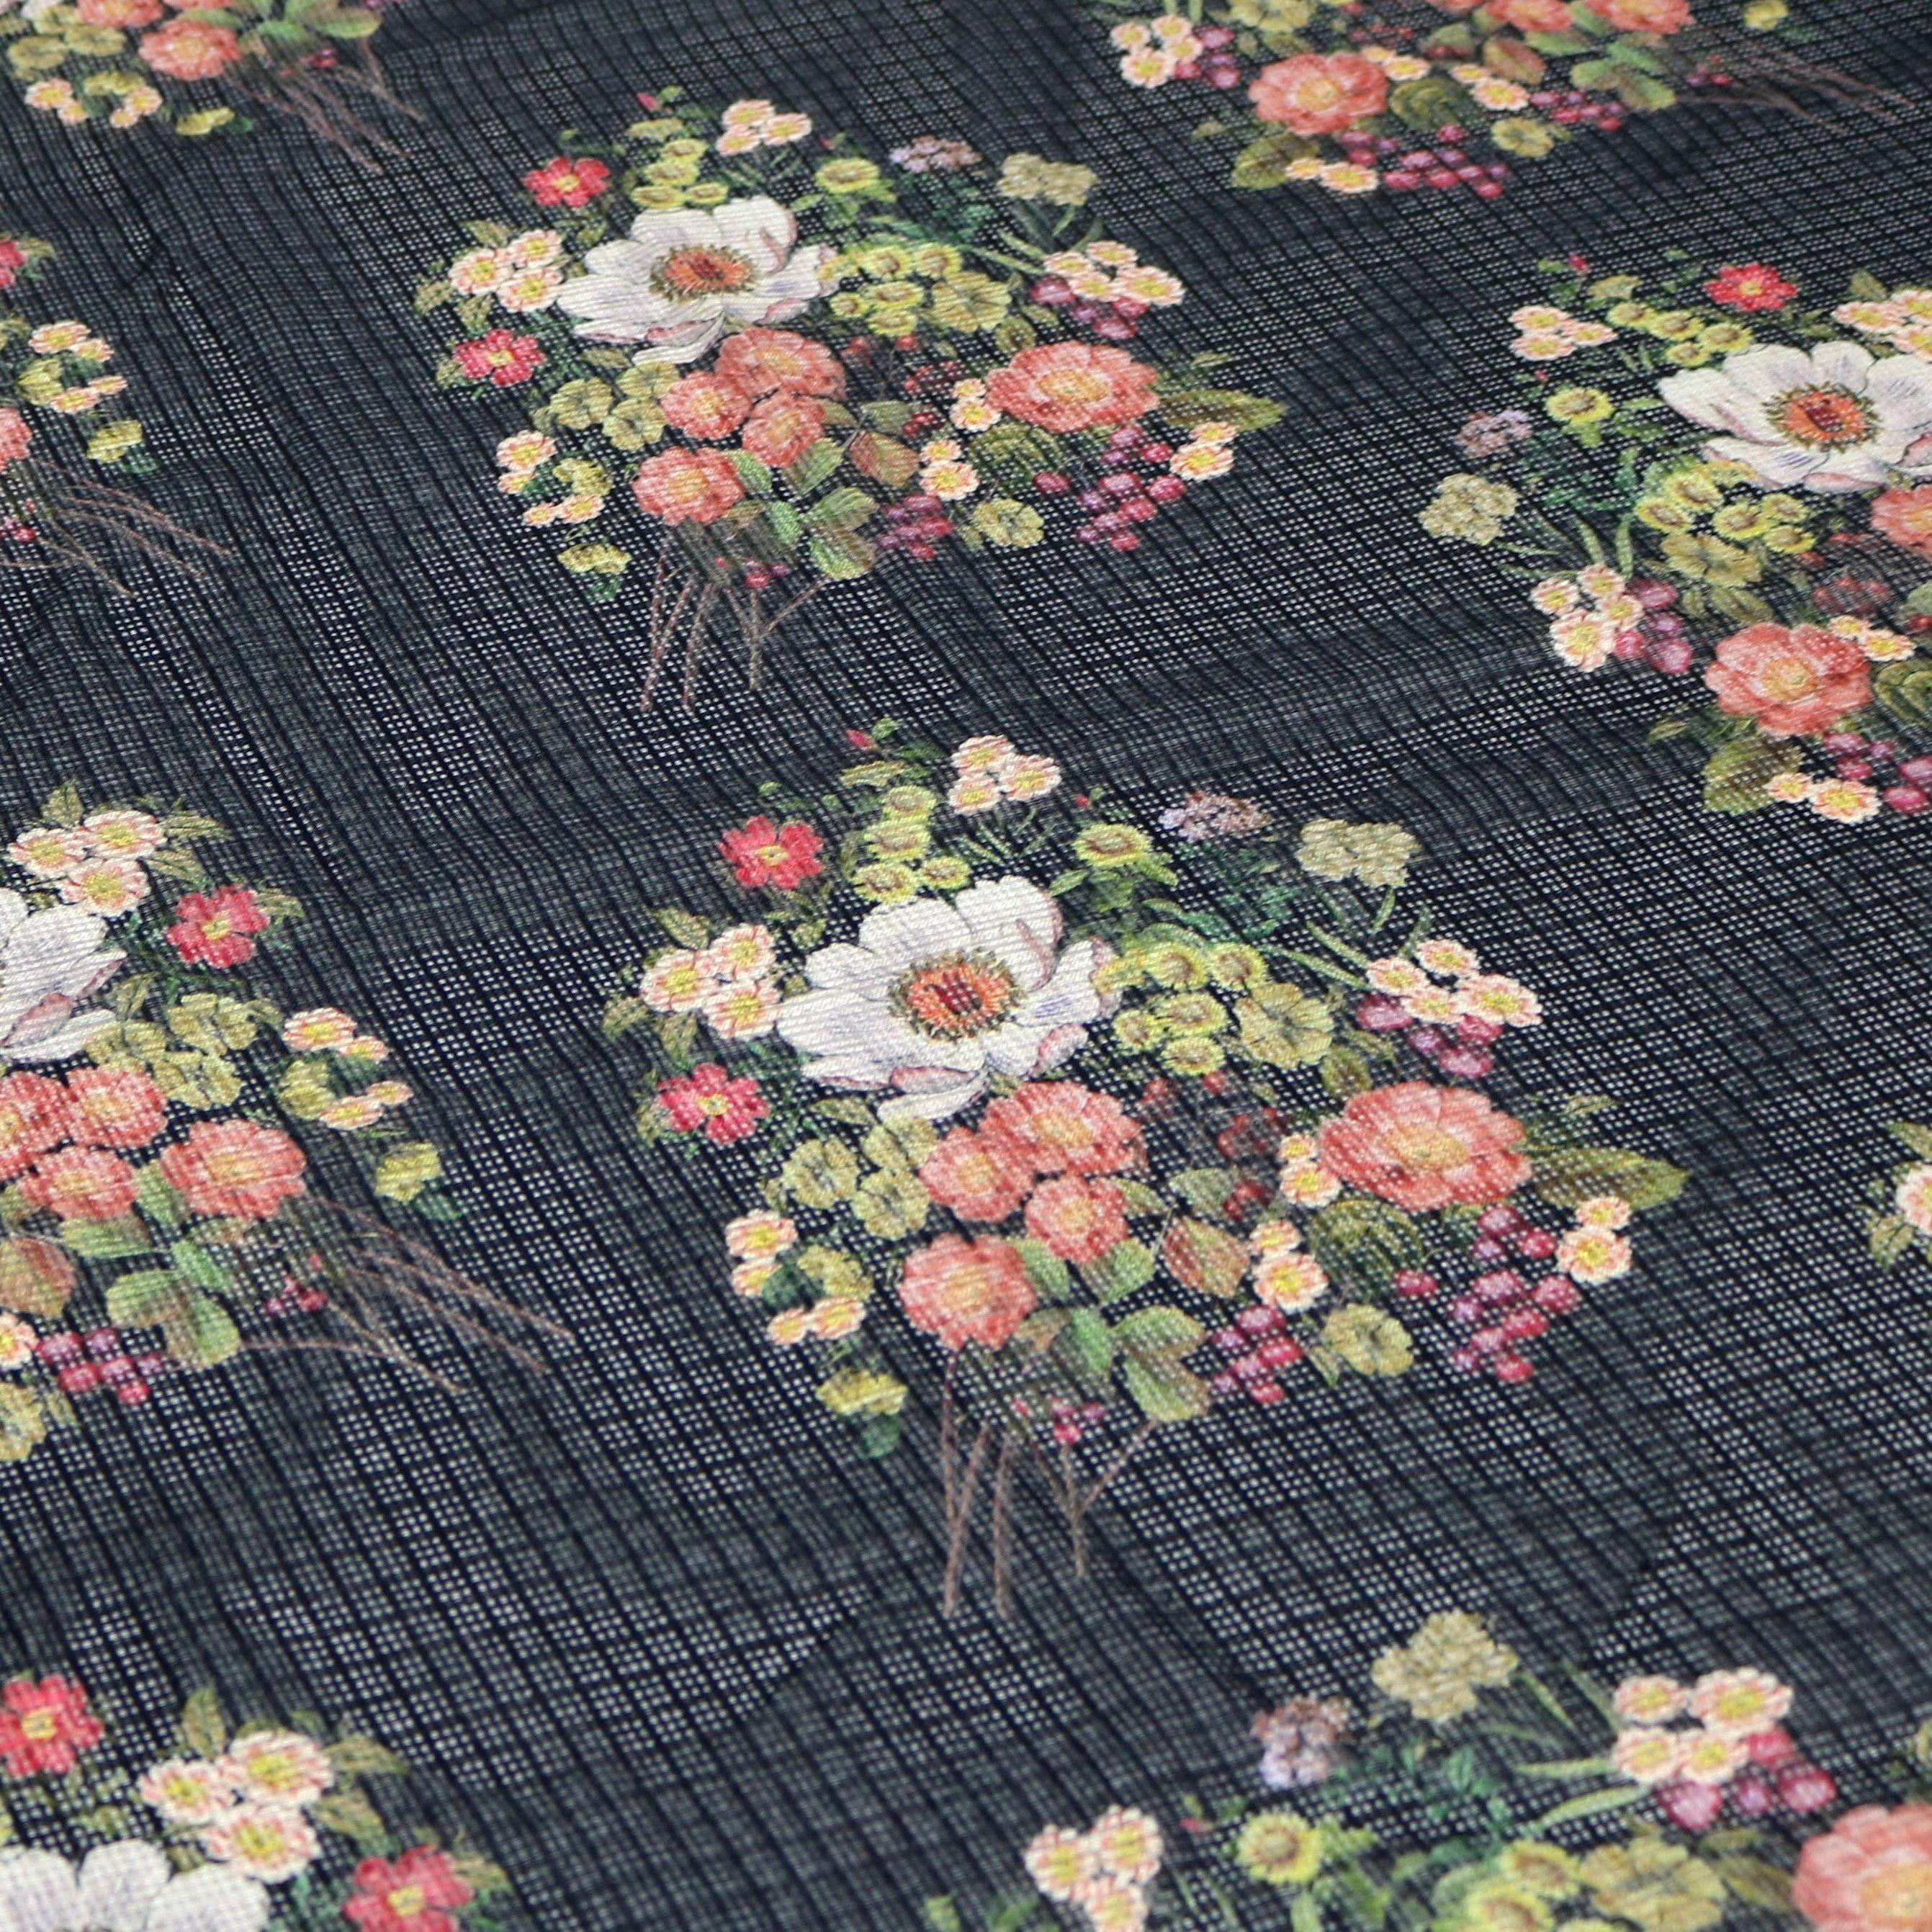 Flowers Laying on Black Base Digital Printed Kota Doria Fabric - FAB VOGUE Studio